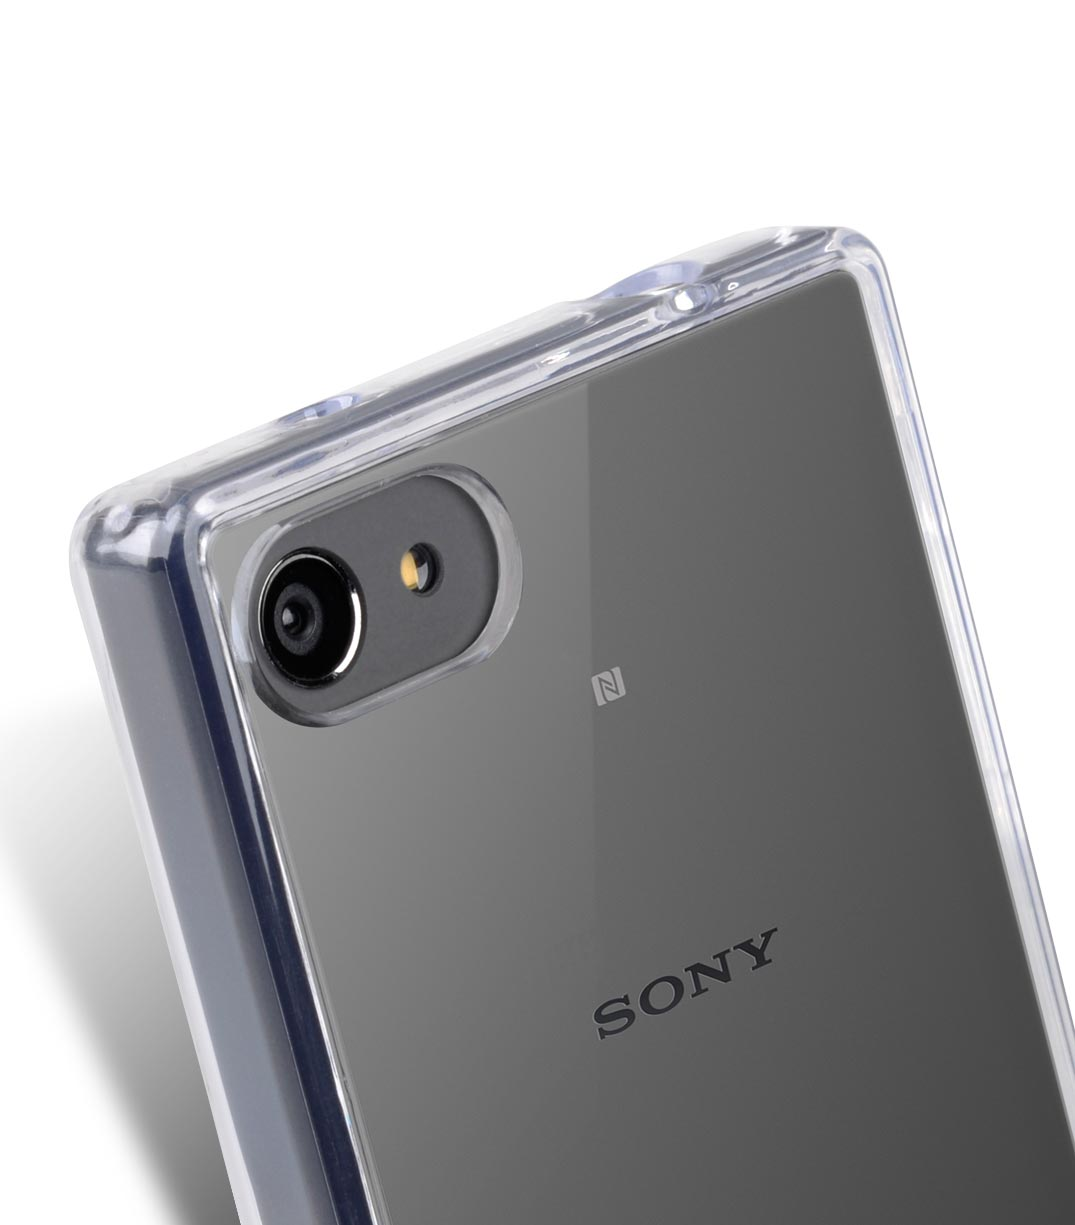 Melkco PolyUltima Cases for Sony Xperia Z5 Mini - Transparent (Without Screen Protector)